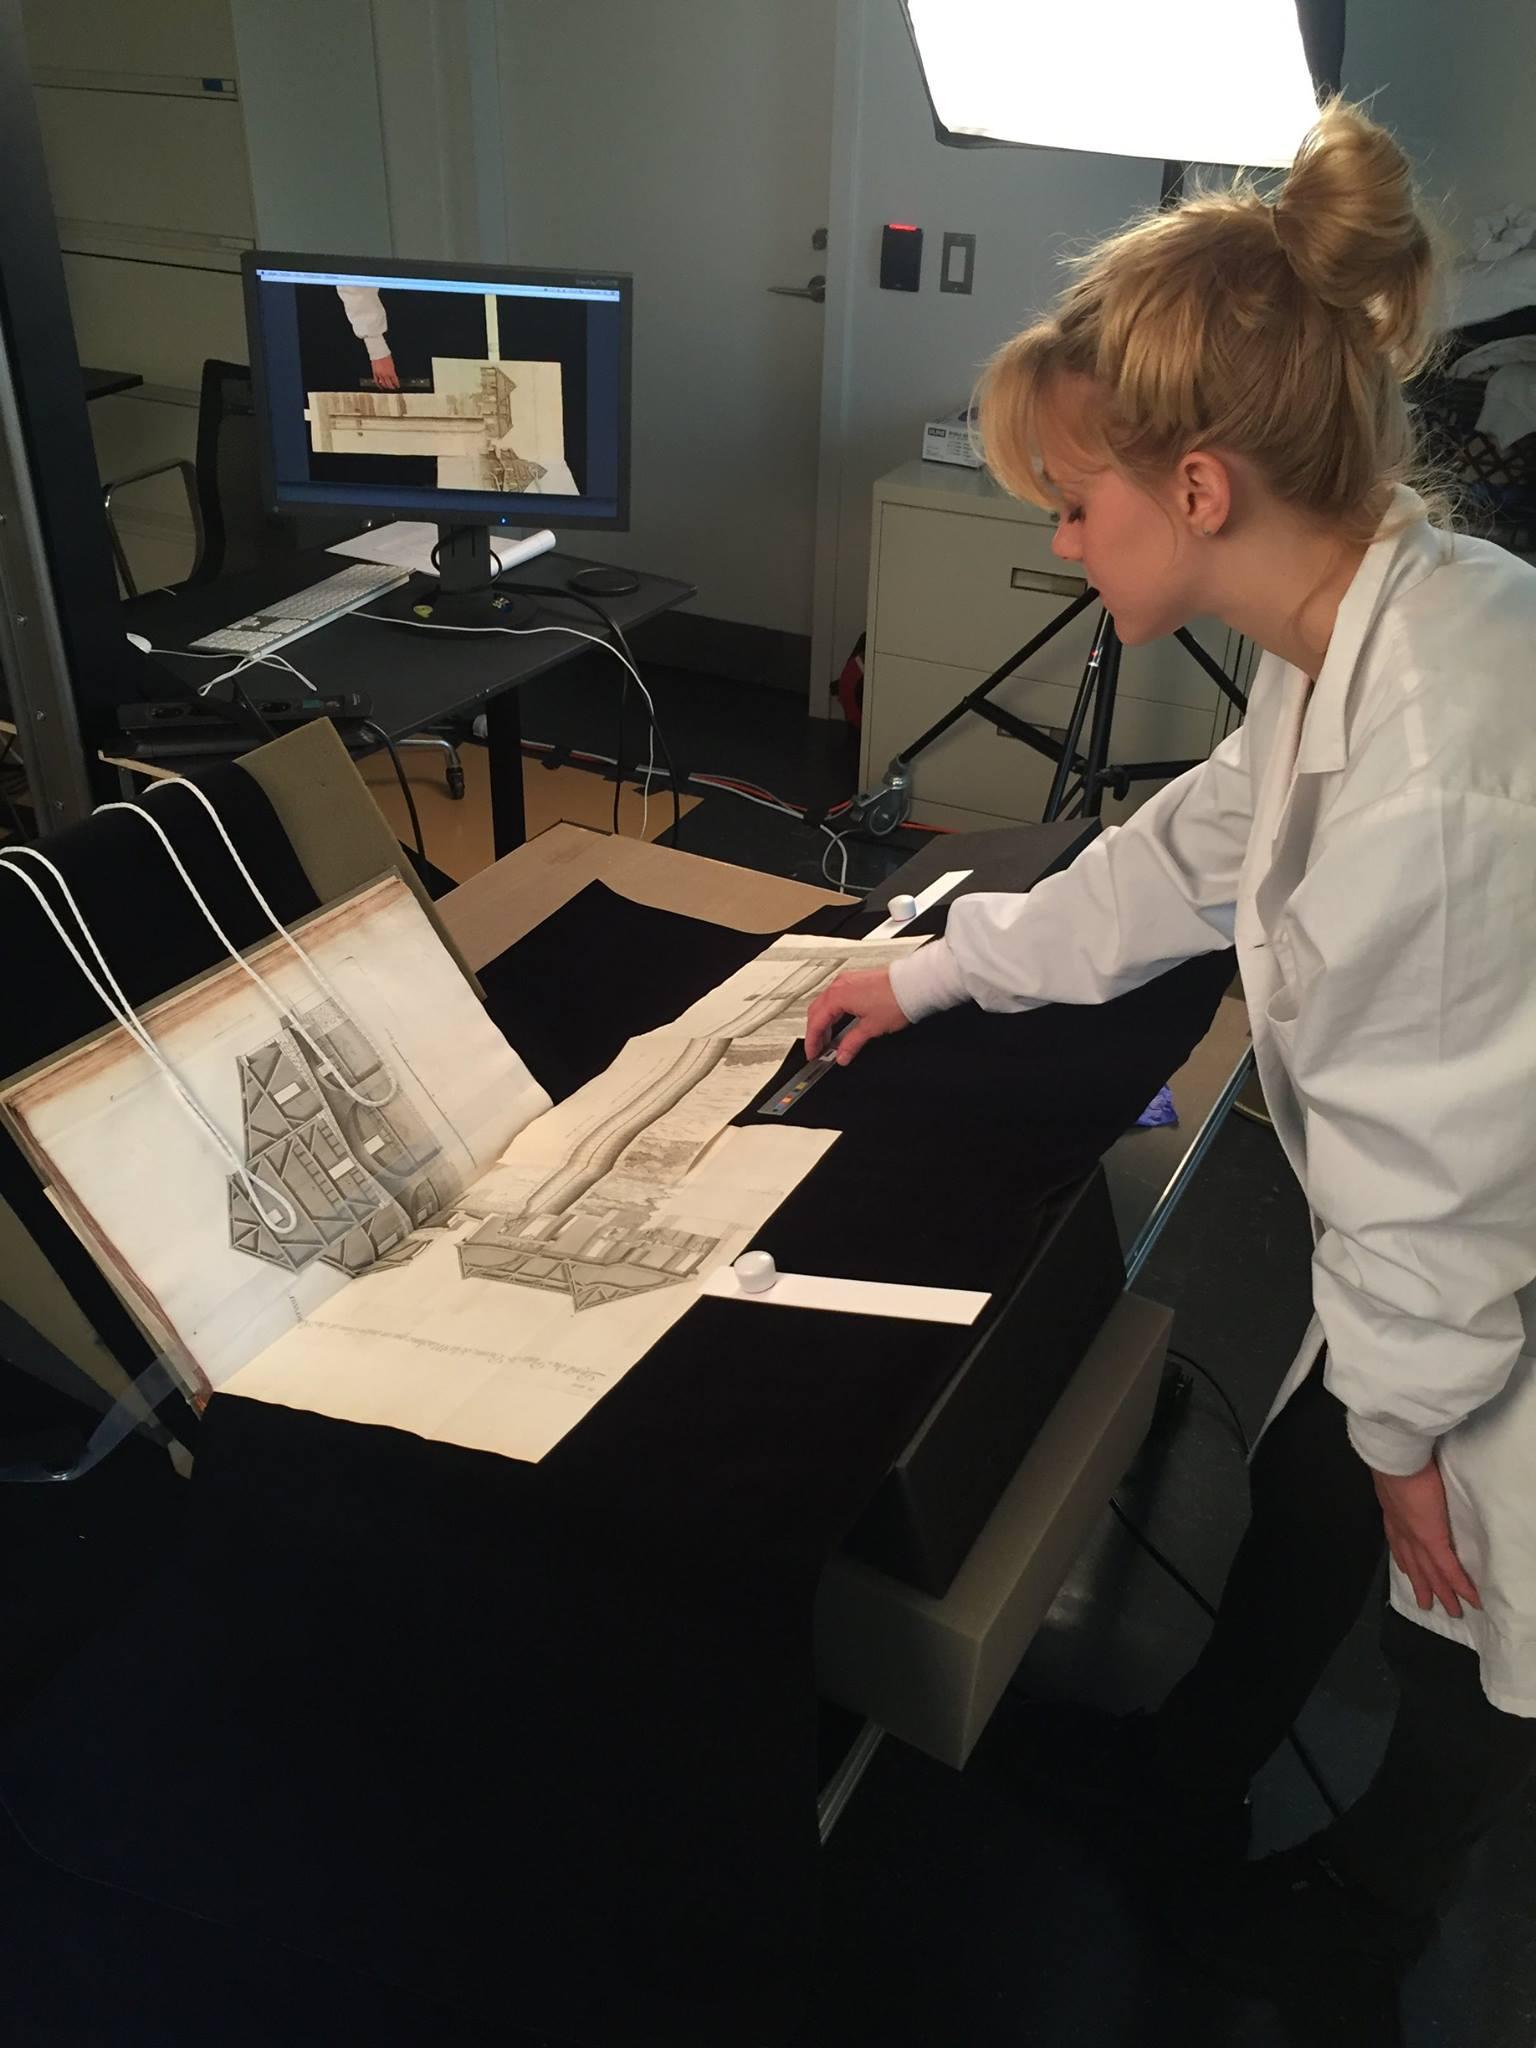 Woman digitizes an image from a book